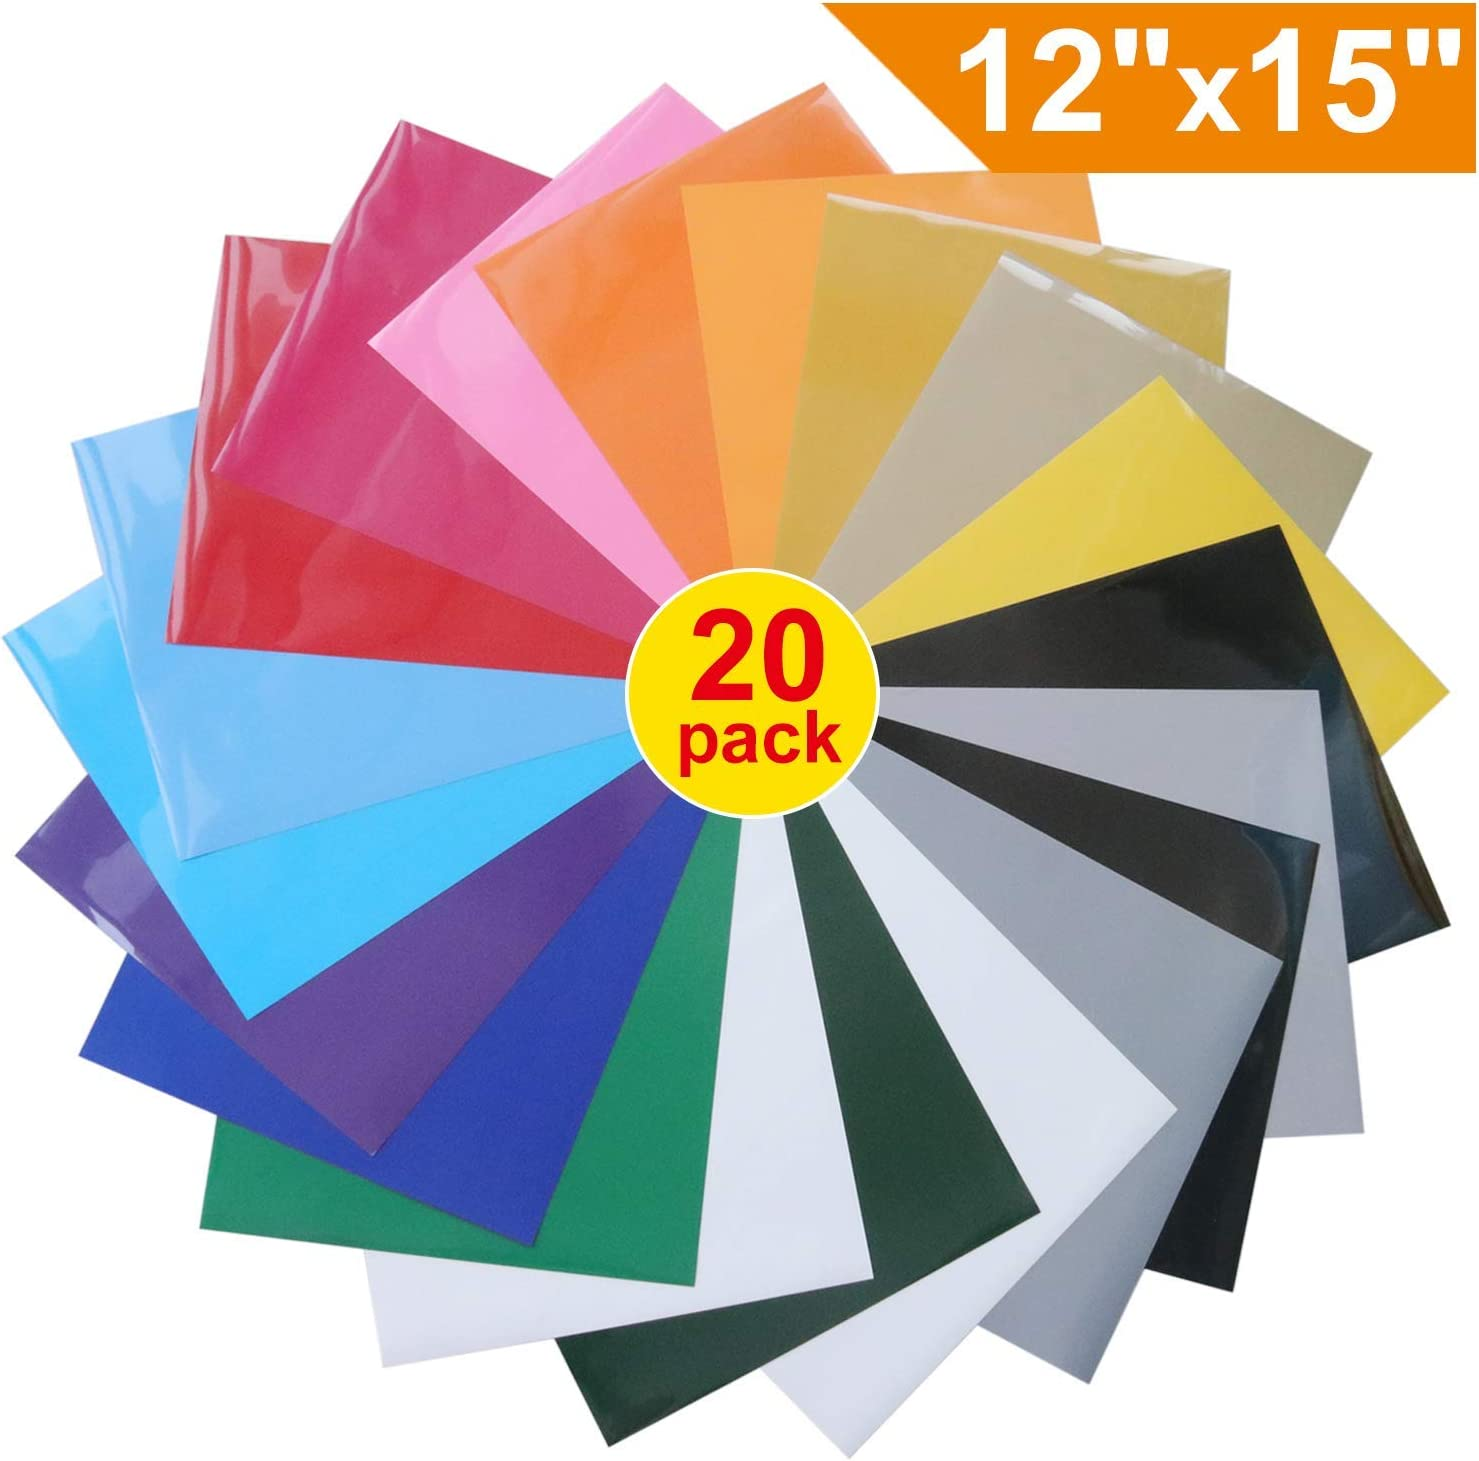 Heat Transfer Vinyl for T-Shirts 18 Assorted Colors 12x 12 Sheets Iron On HTV for Cricut and Silhouette Cameo 20 Pack